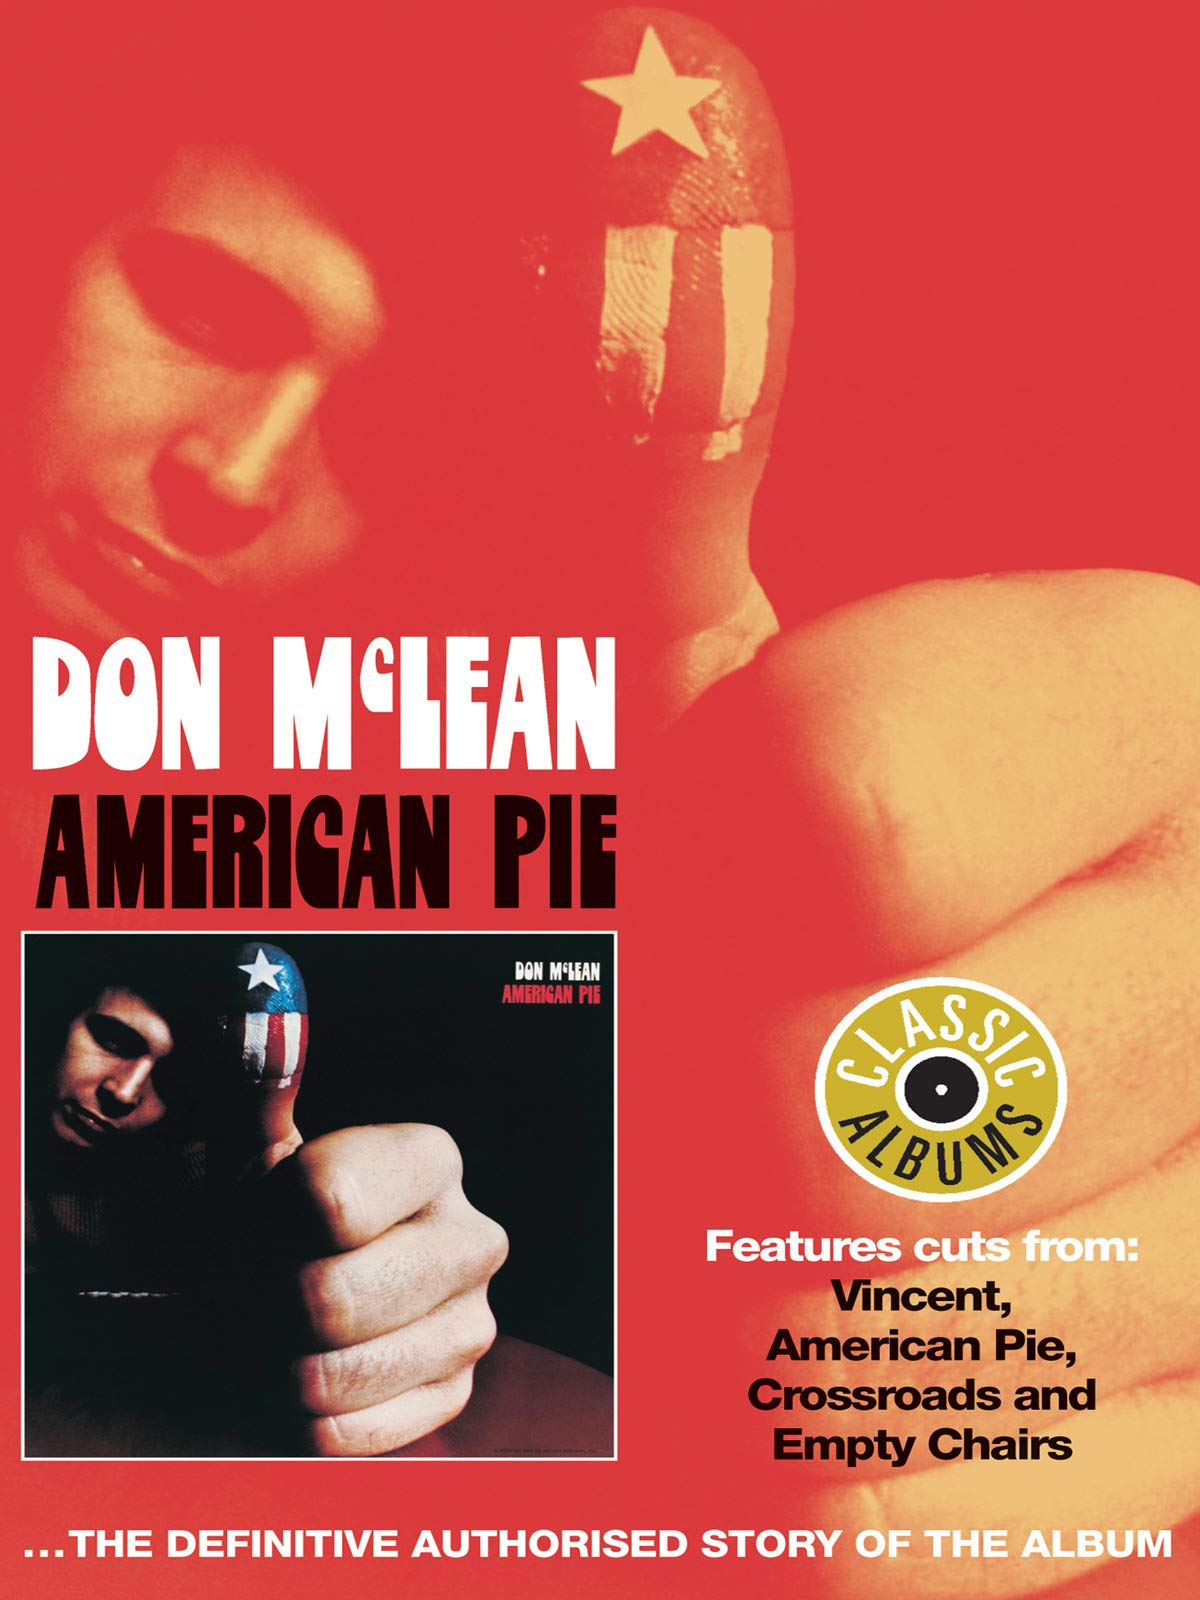 Don Mclean - American Pie (Classic Album) on Amazon Prime Video UK